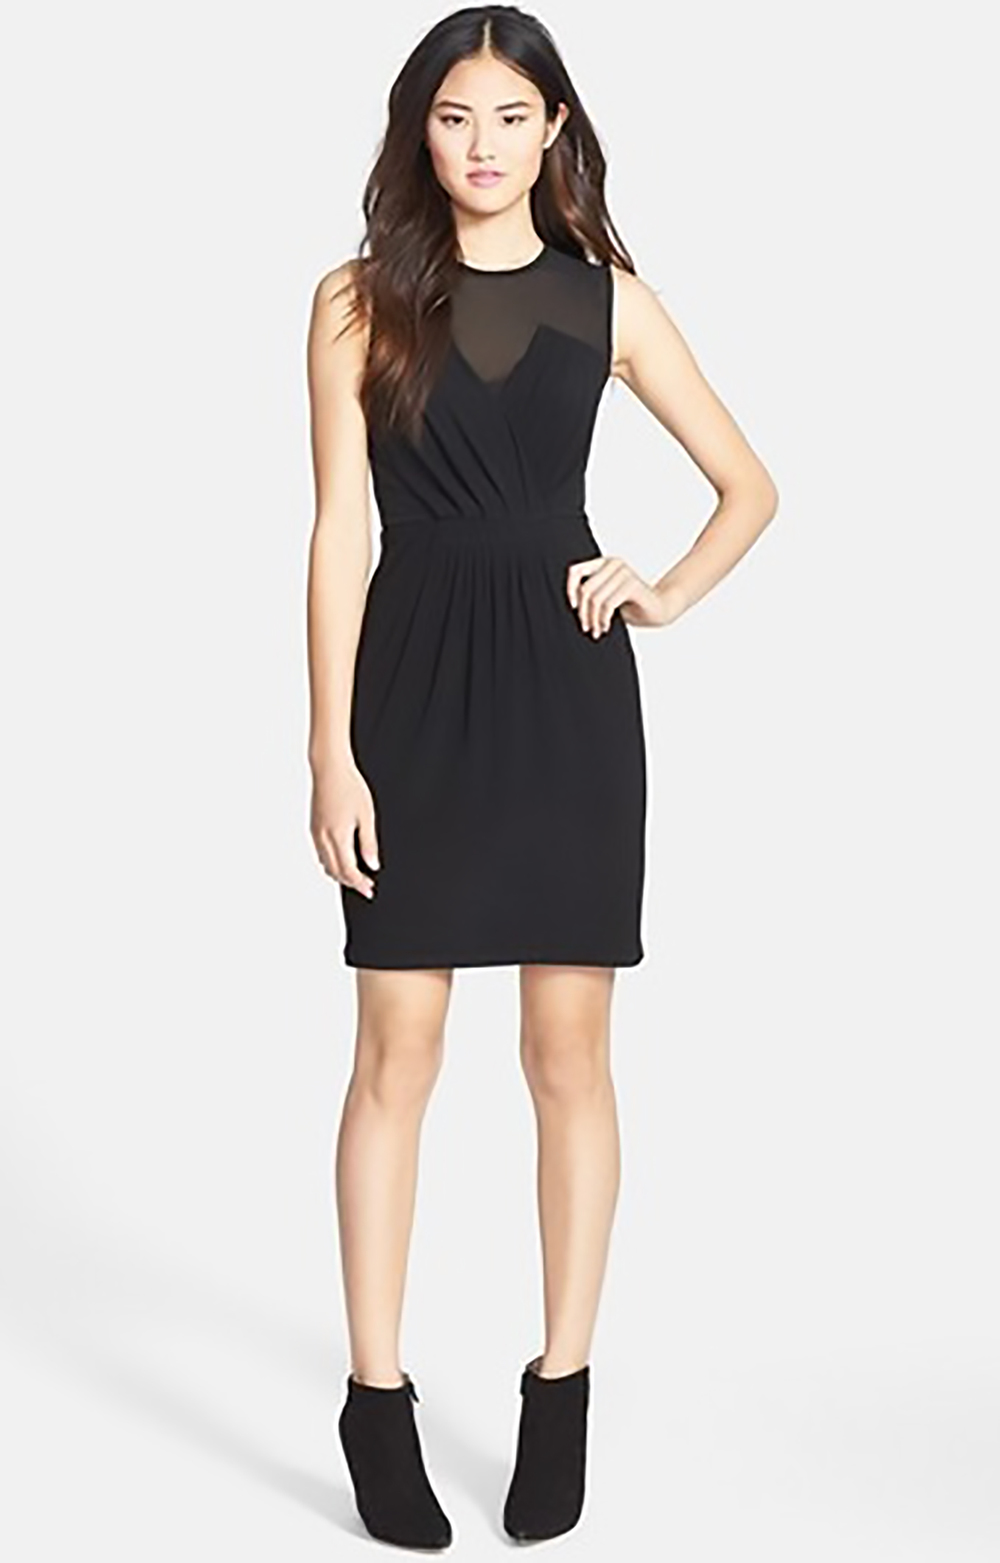 nordstrom ever so crossover stretch jersey dress holiday party 1500.jpg